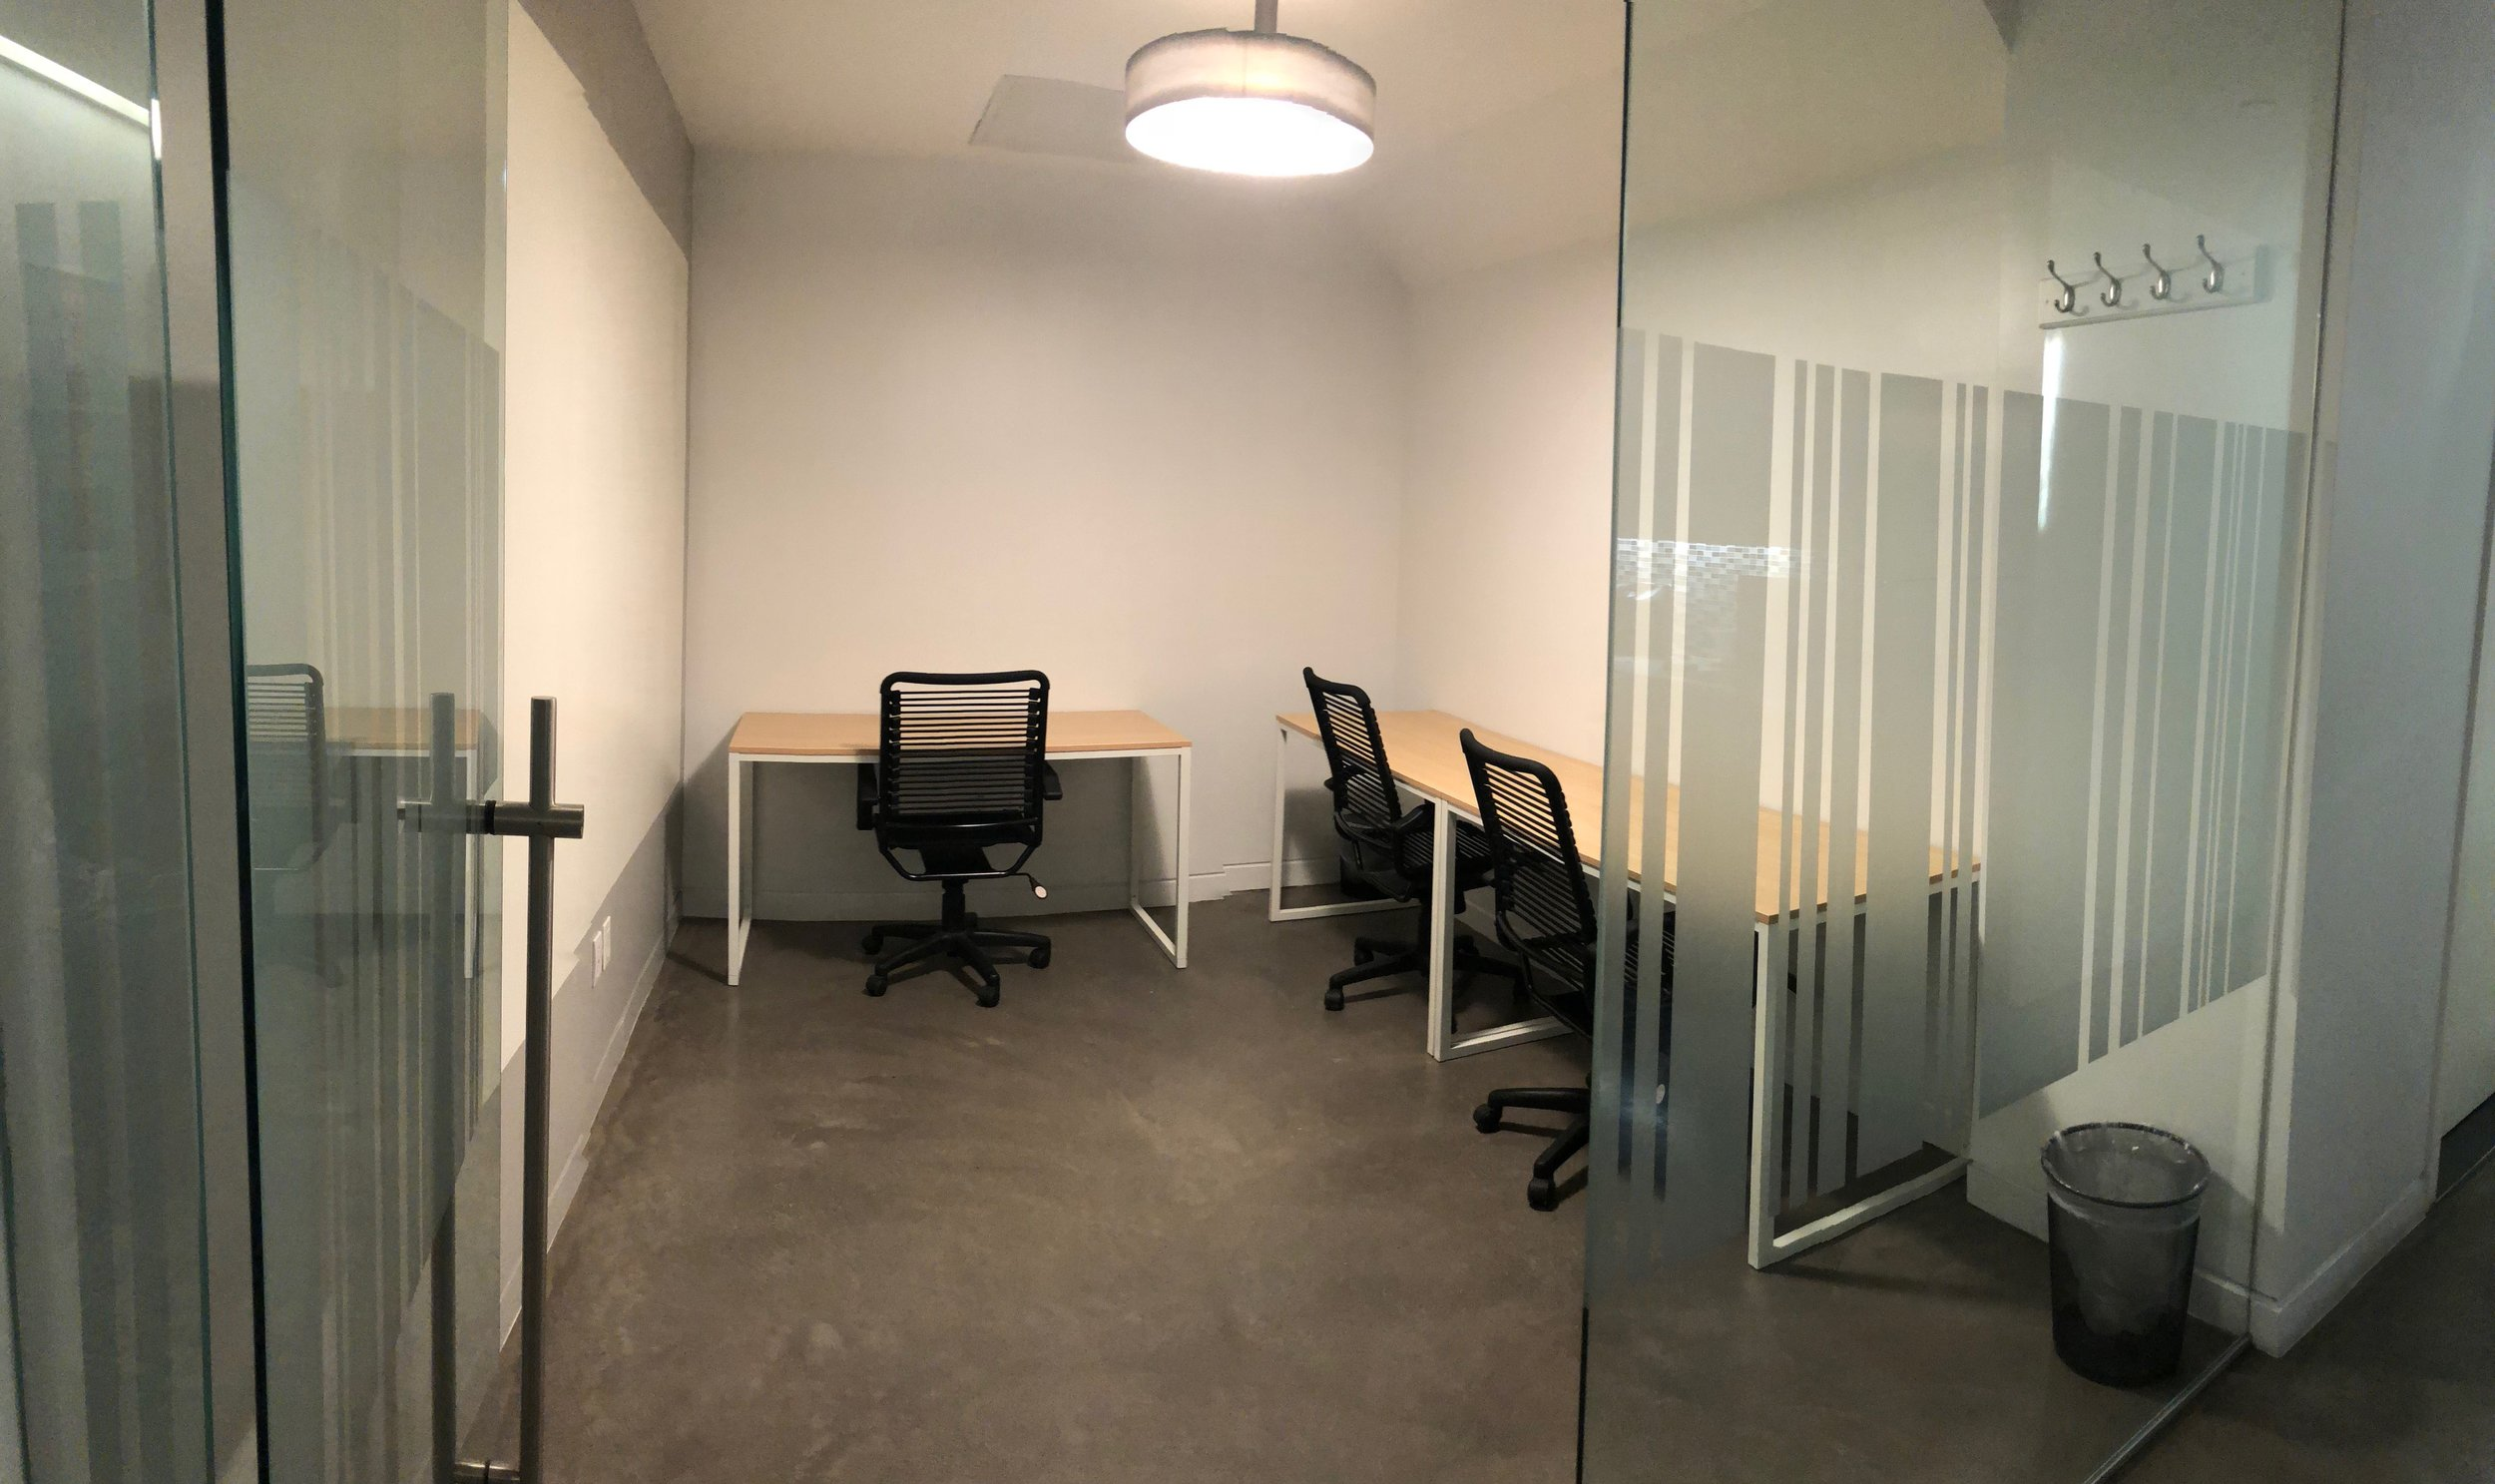 Whiteboard wall , seating for 3-4 desks